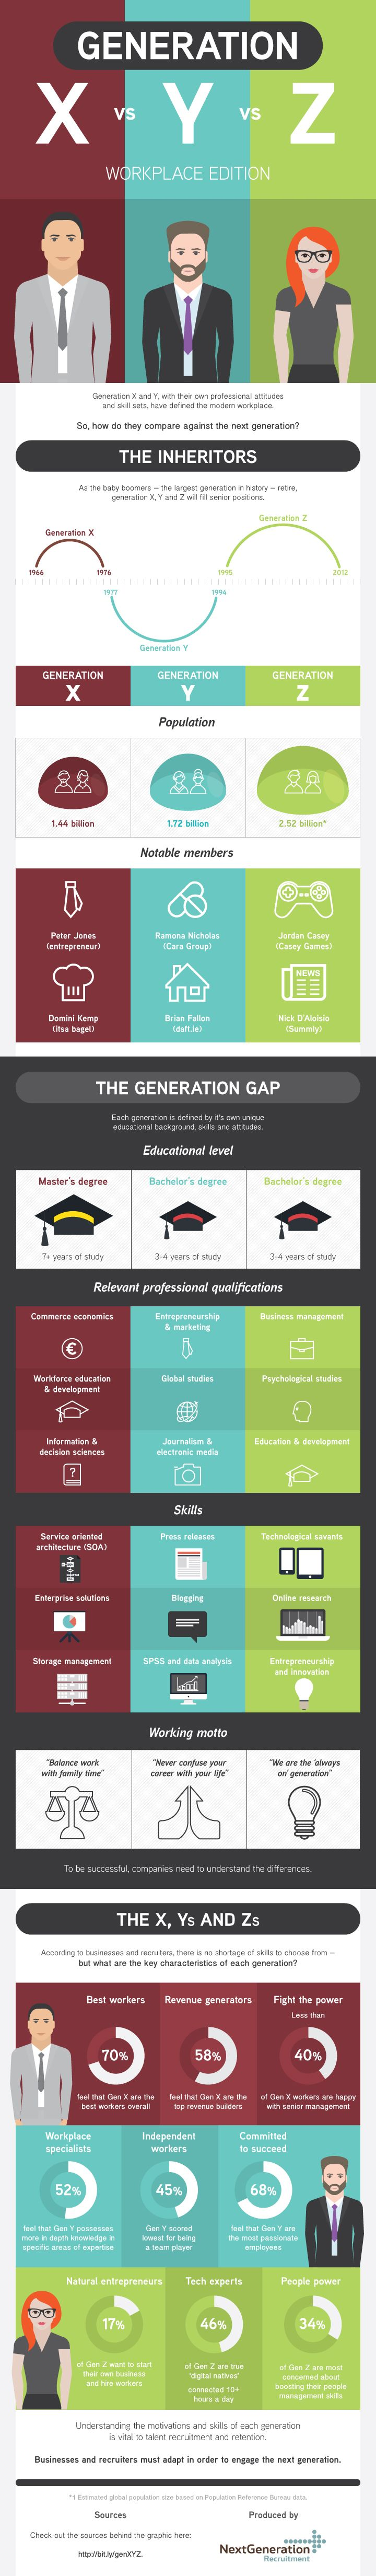 Generations X, Y and Z, with their own respective attitudes and attributes, have defined the modern workplace. Understanding the motivations and skills of each of these generations is paramount to recruiting and retaining the right people. So, how do the generations compare with each other? Find out in this latest infographic. Generation X vs Y …